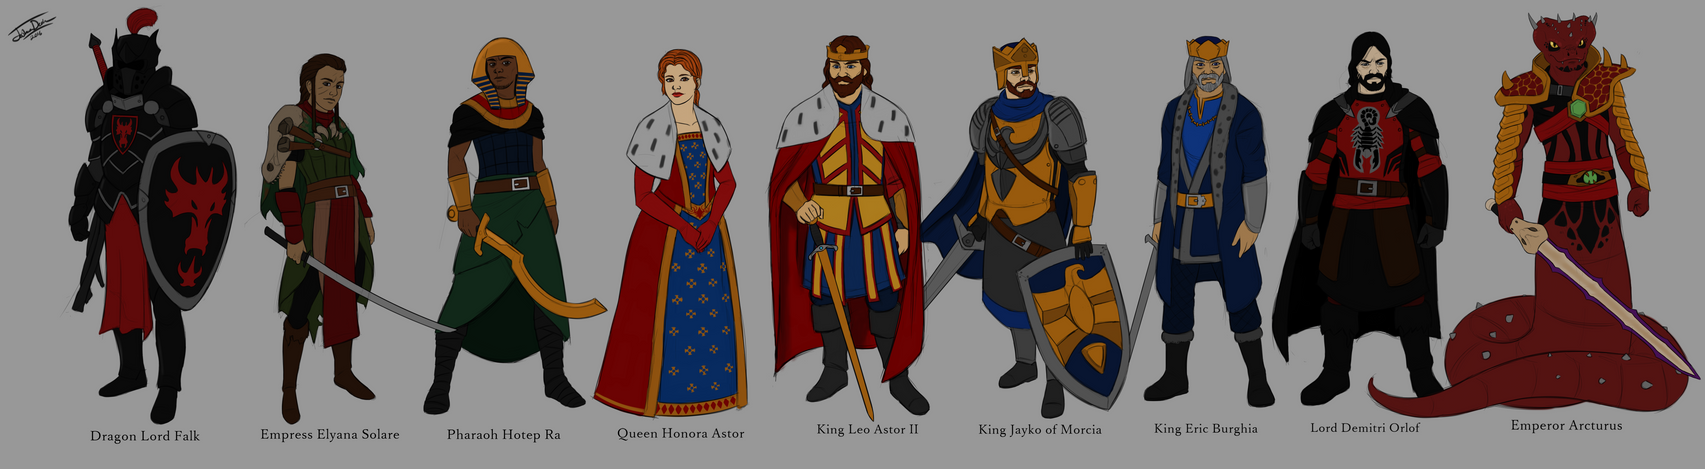 The Second Rulers of Aurum by joshuad17